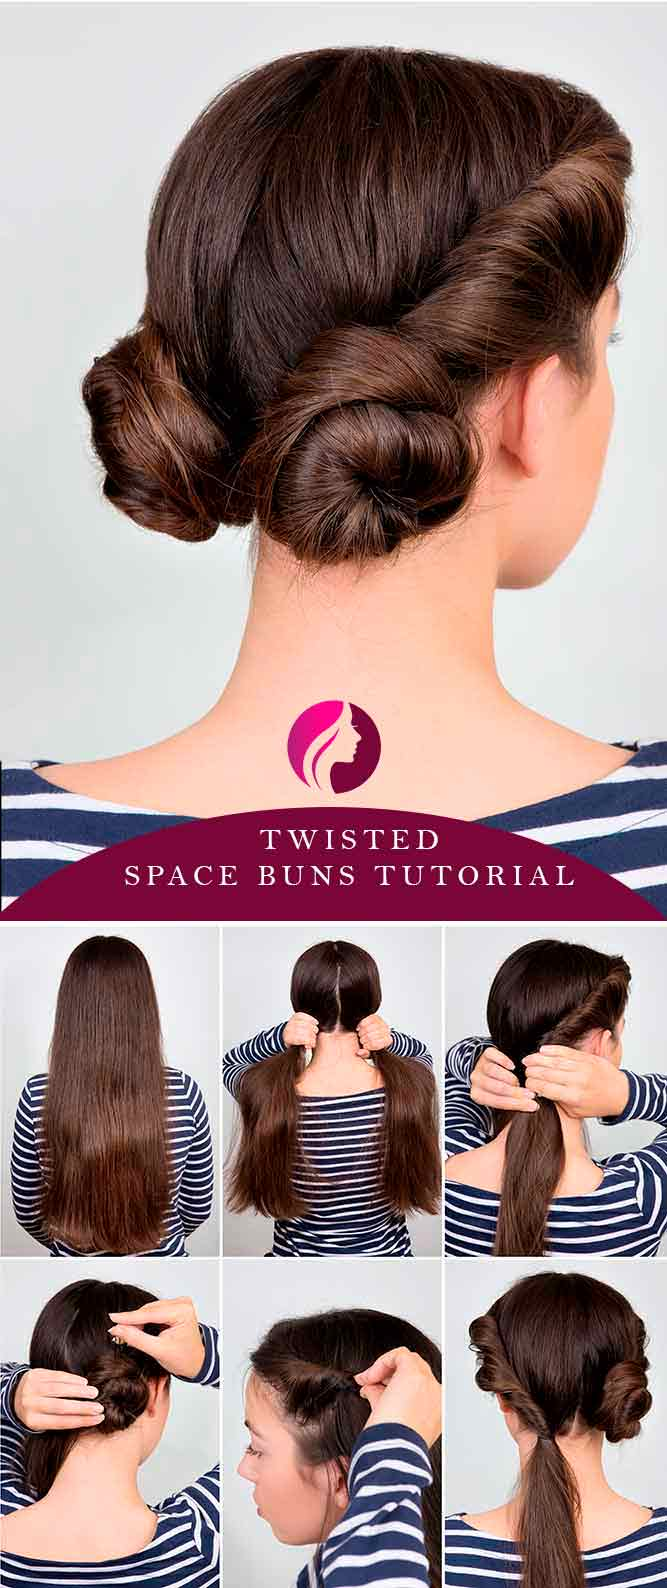 Twisted Space Buns #spacebuns #tutorials